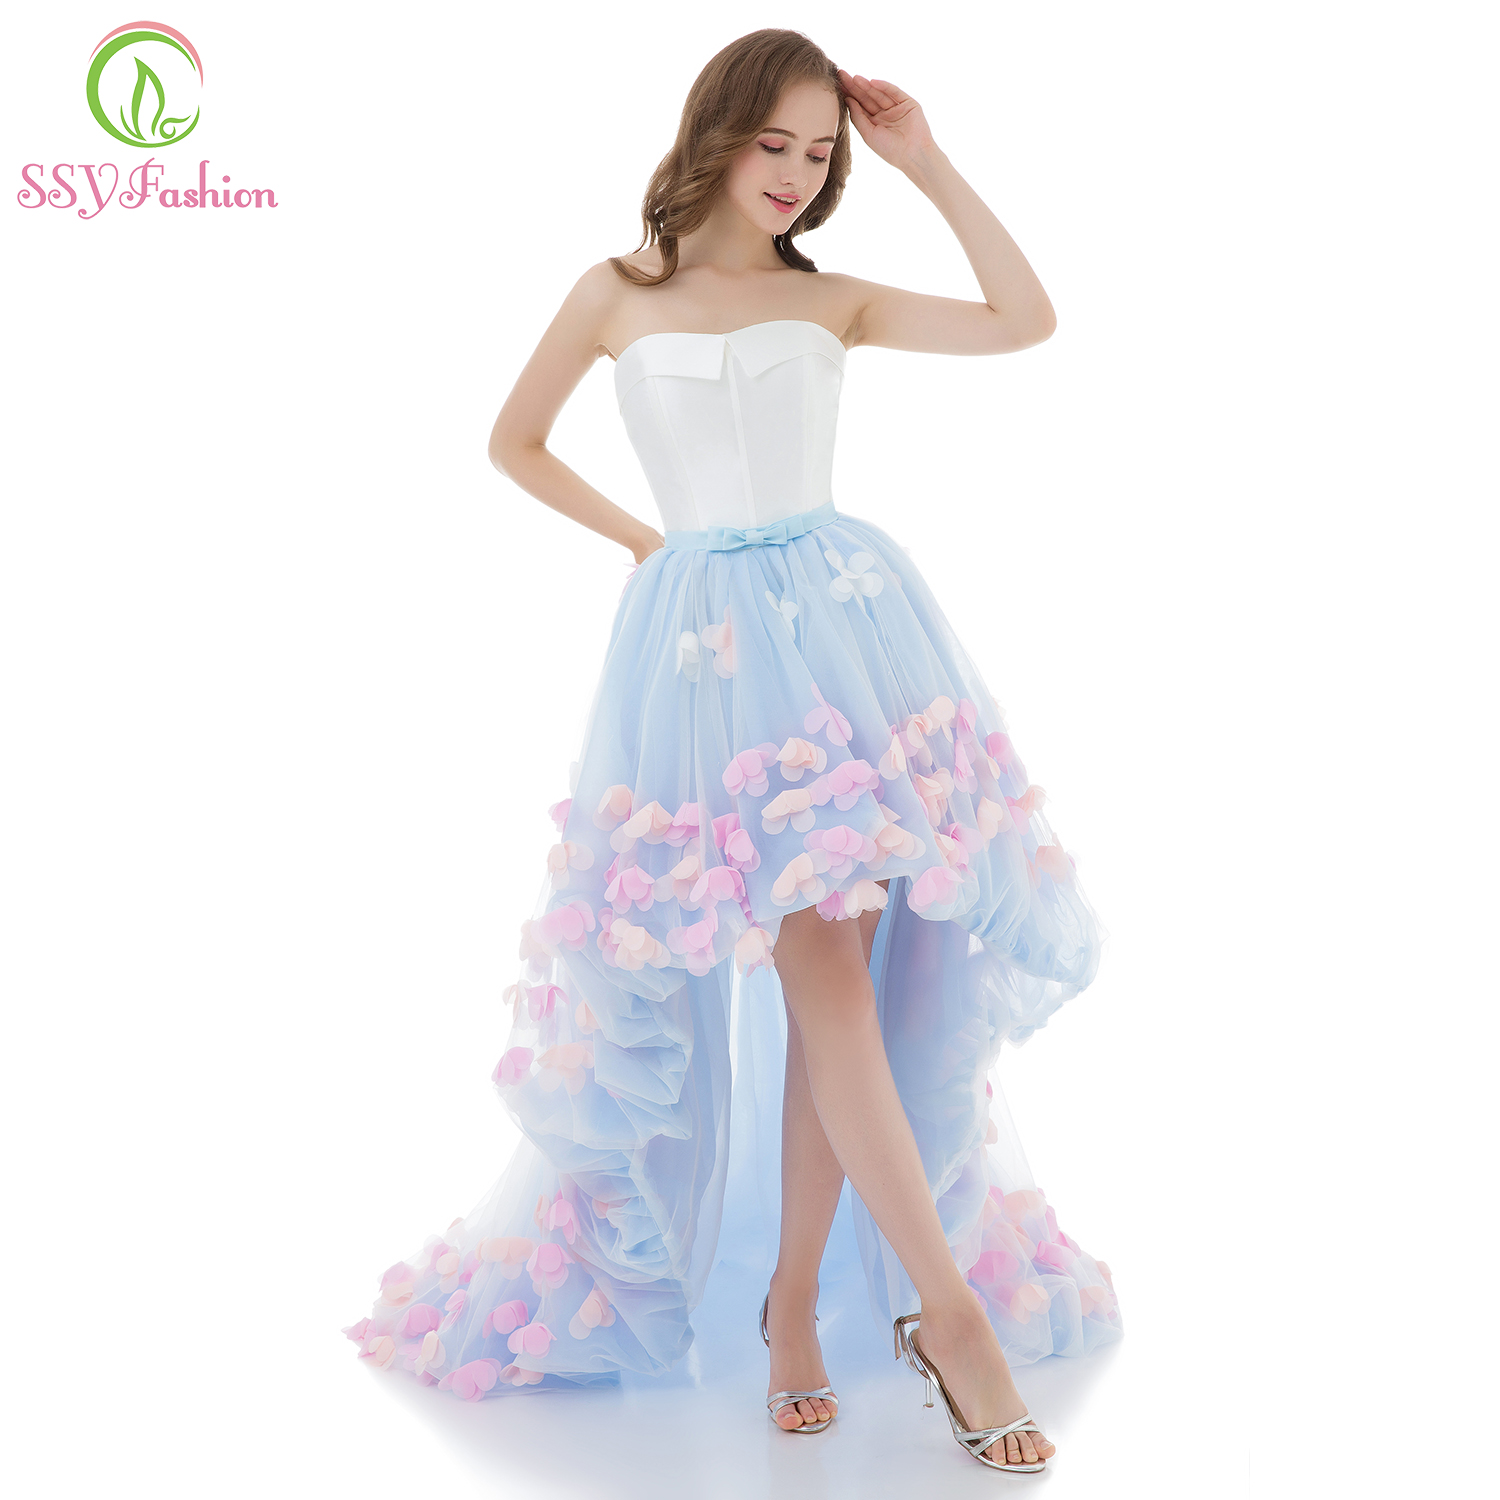 SSYFashion Sweet Light Blue Lace Flower Evening Dress Sexy Strapless Appliques Short Front Long Back Banquet Party Fromal Gowns